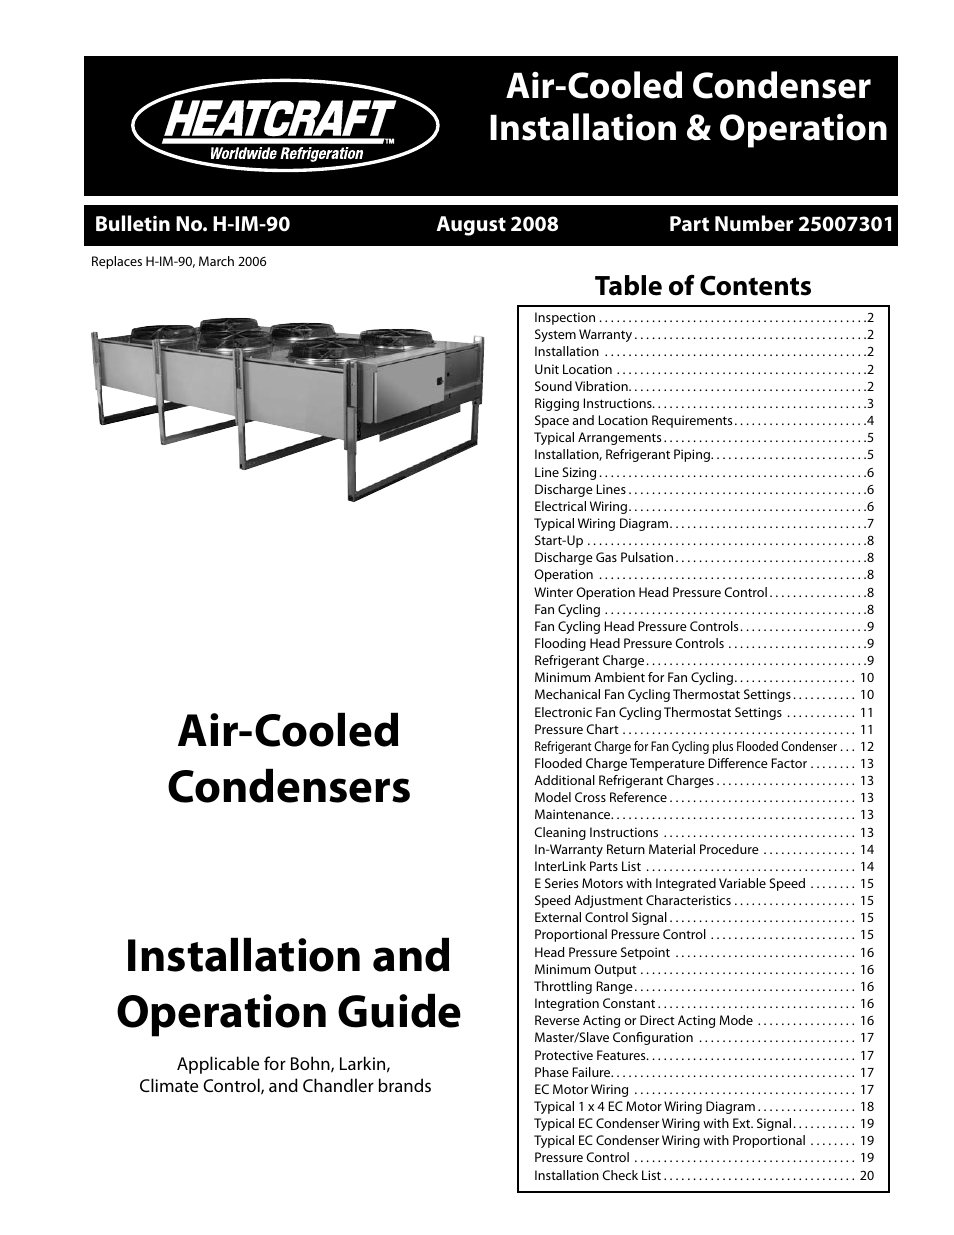 medium resolution of heatcraft refrigeration products air cooled condensers none user manual 20 pages